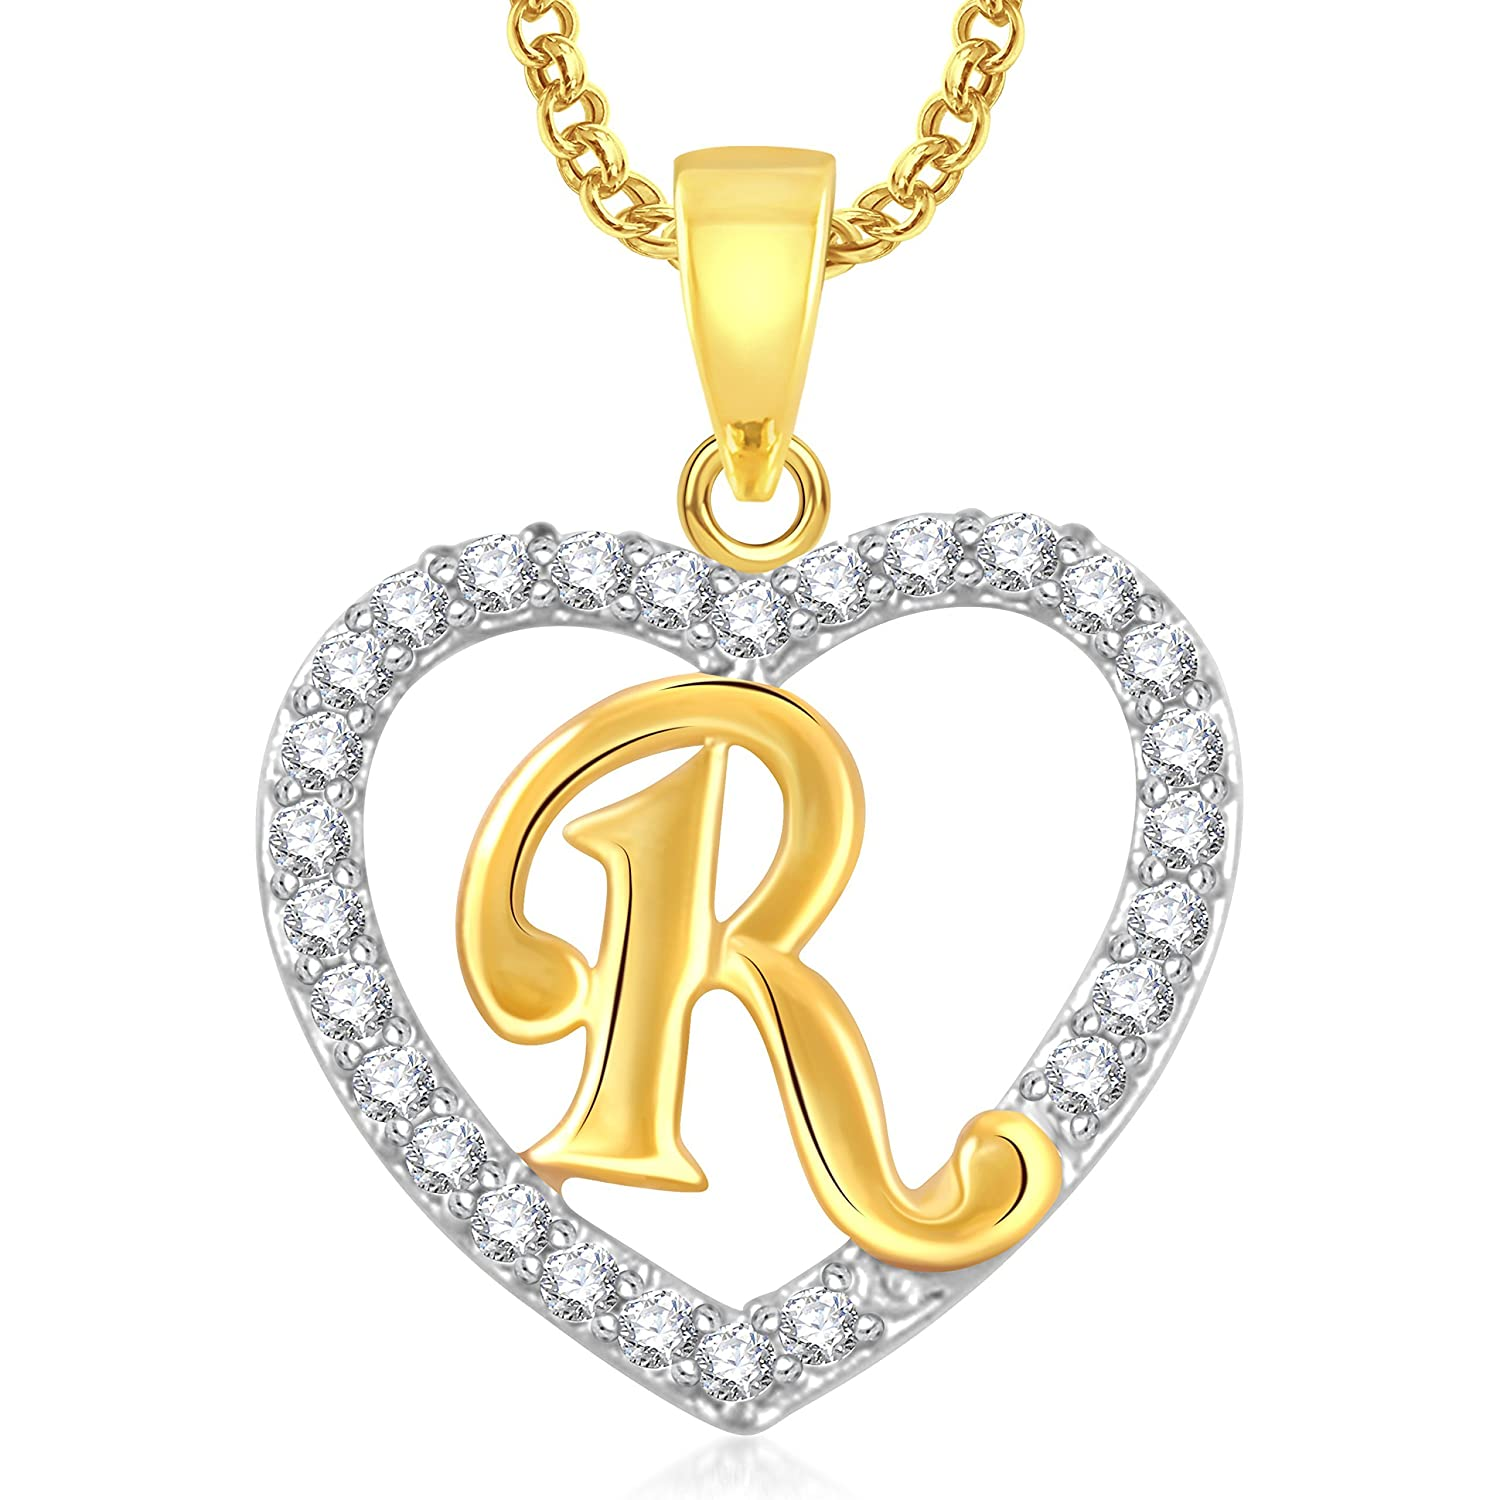 chains watch jewellery designs pendant locket necklace with gold chain youtube